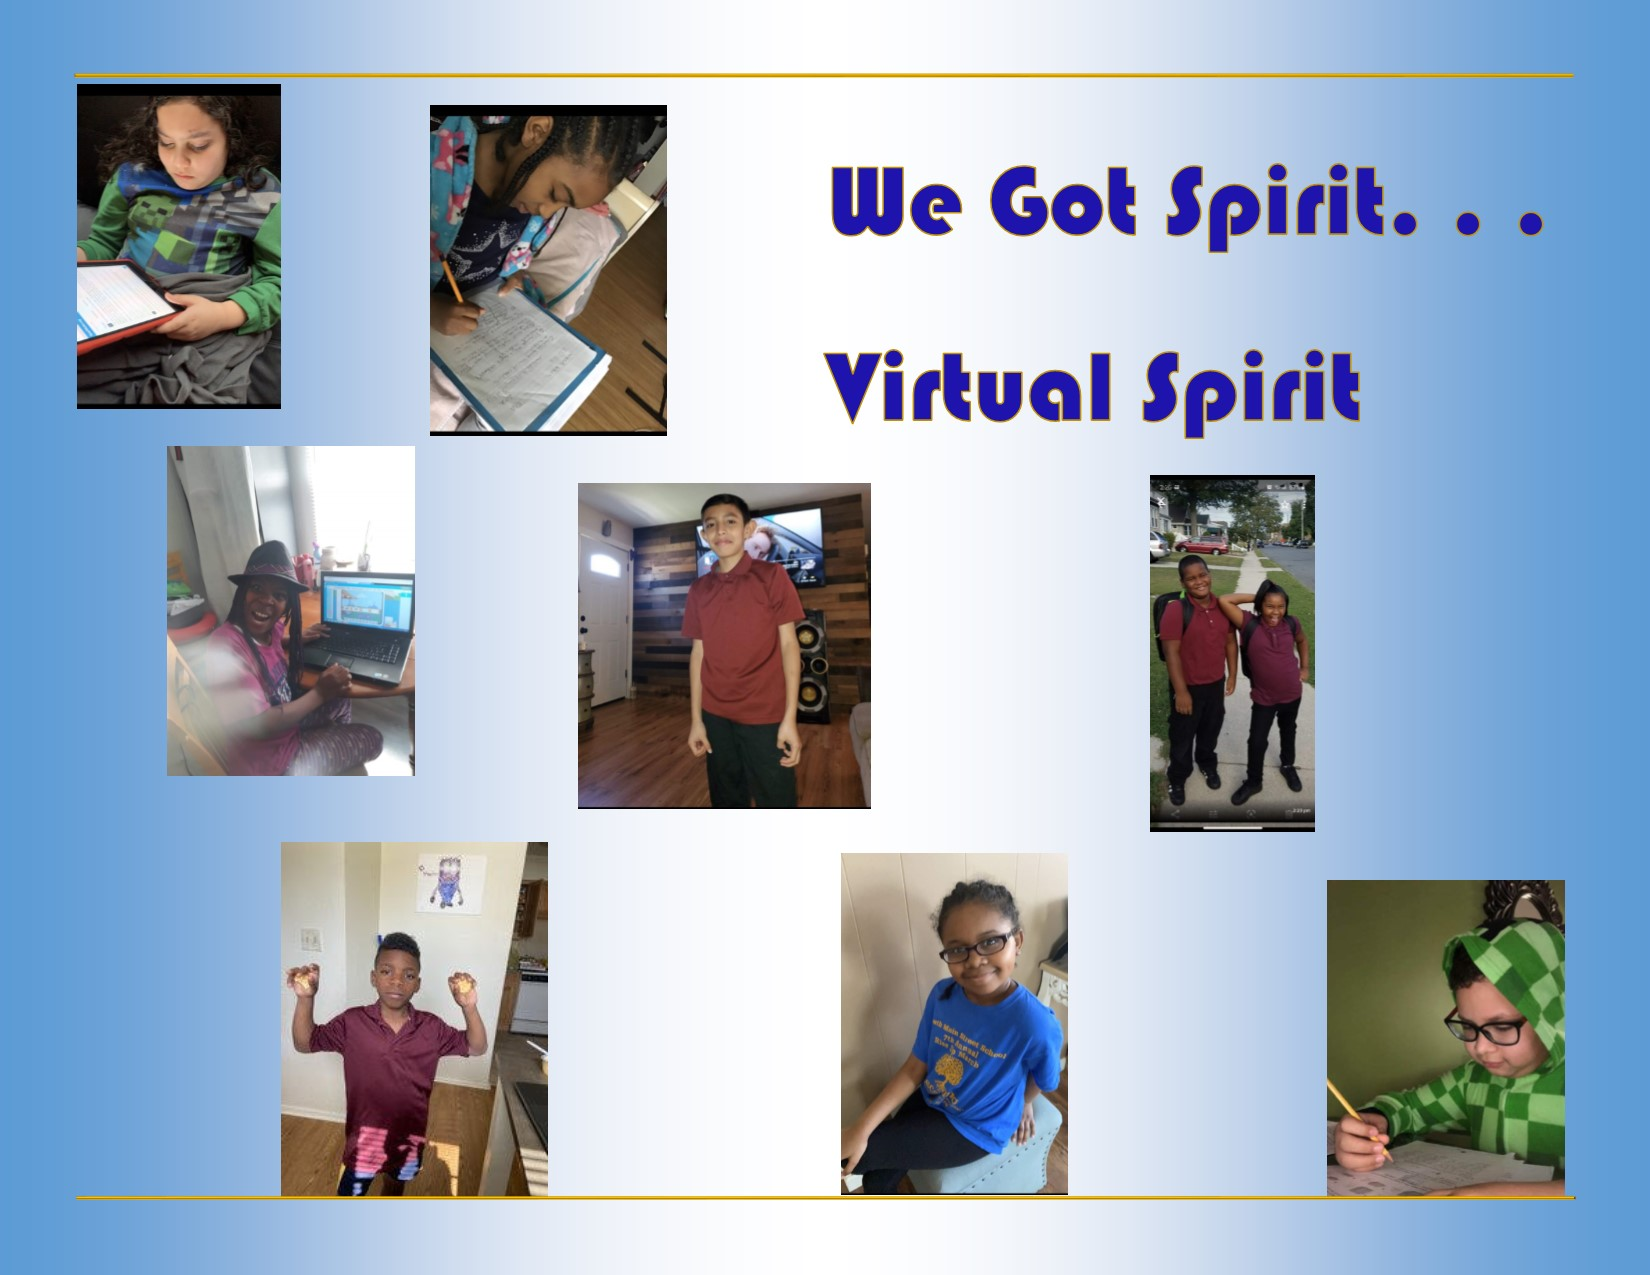 We go Spirit... Virtual Spirit